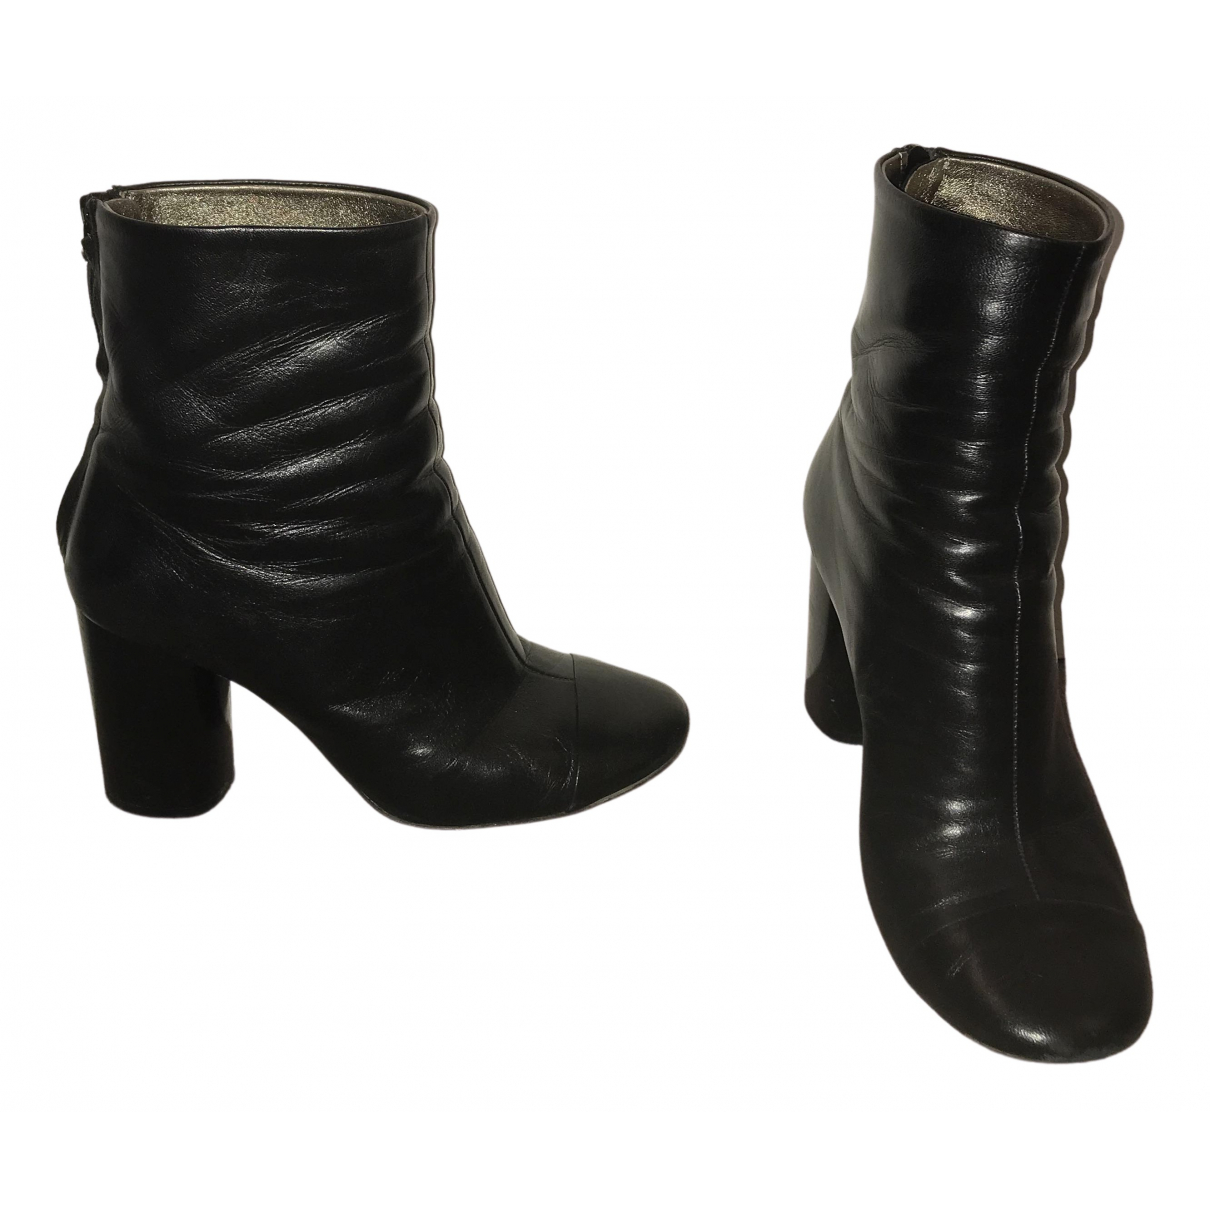 Isabel Marant N Black Leather Boots for Women 37 EU